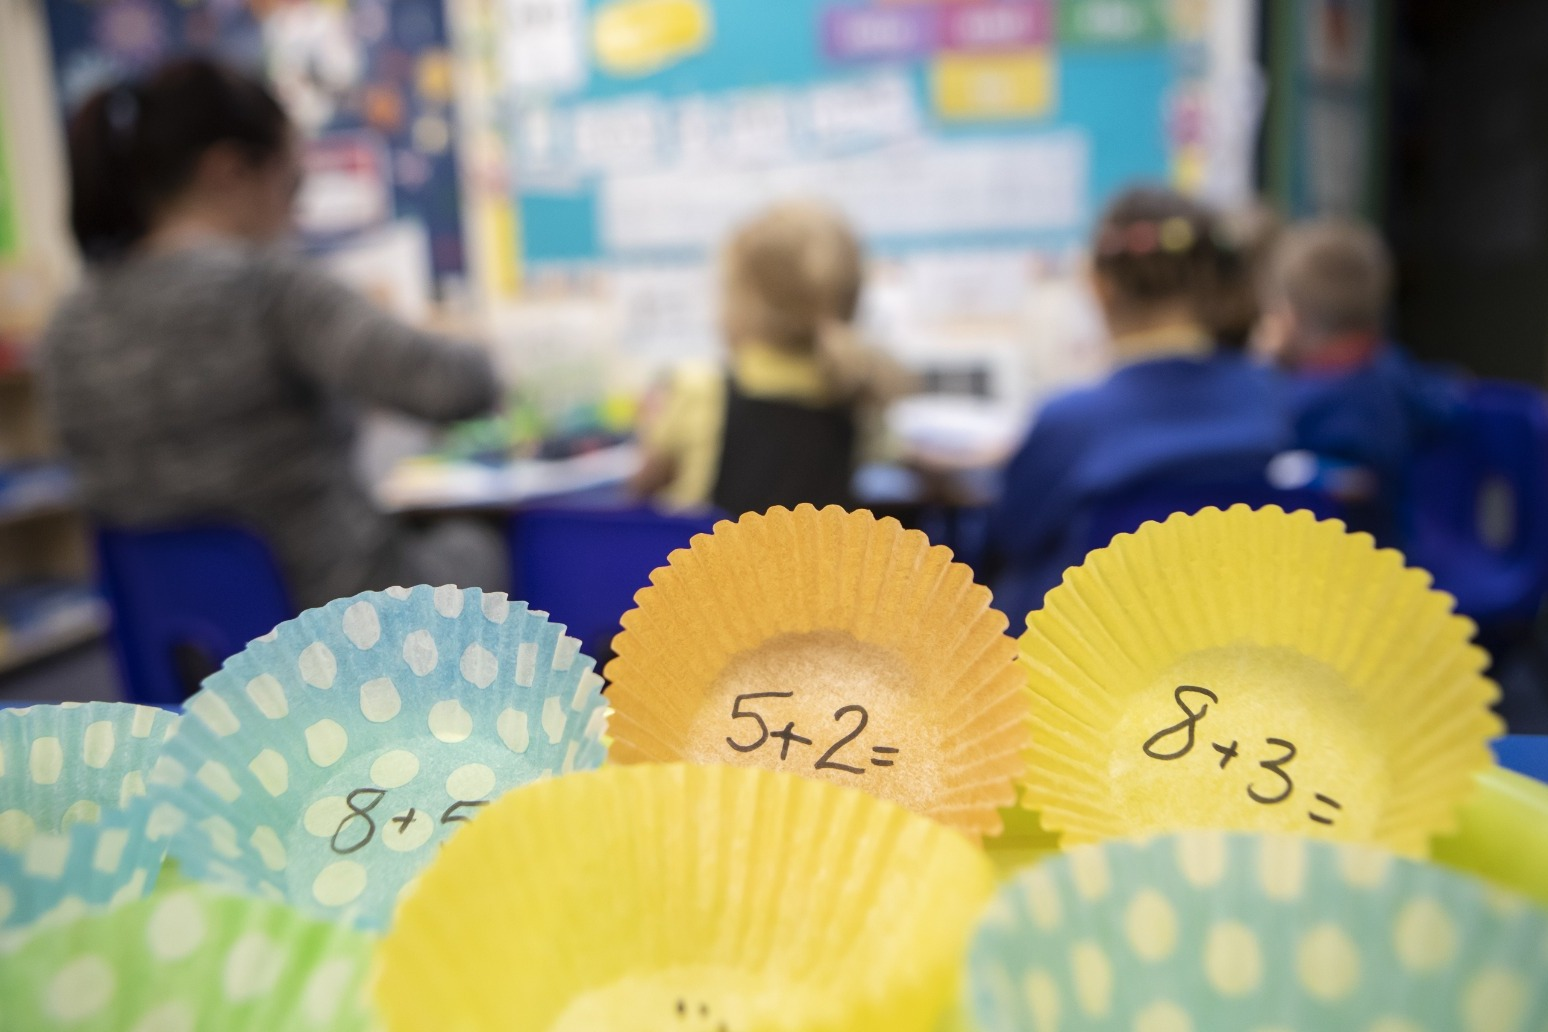 Schools in England to receive CO2 monitors to improve ventilation